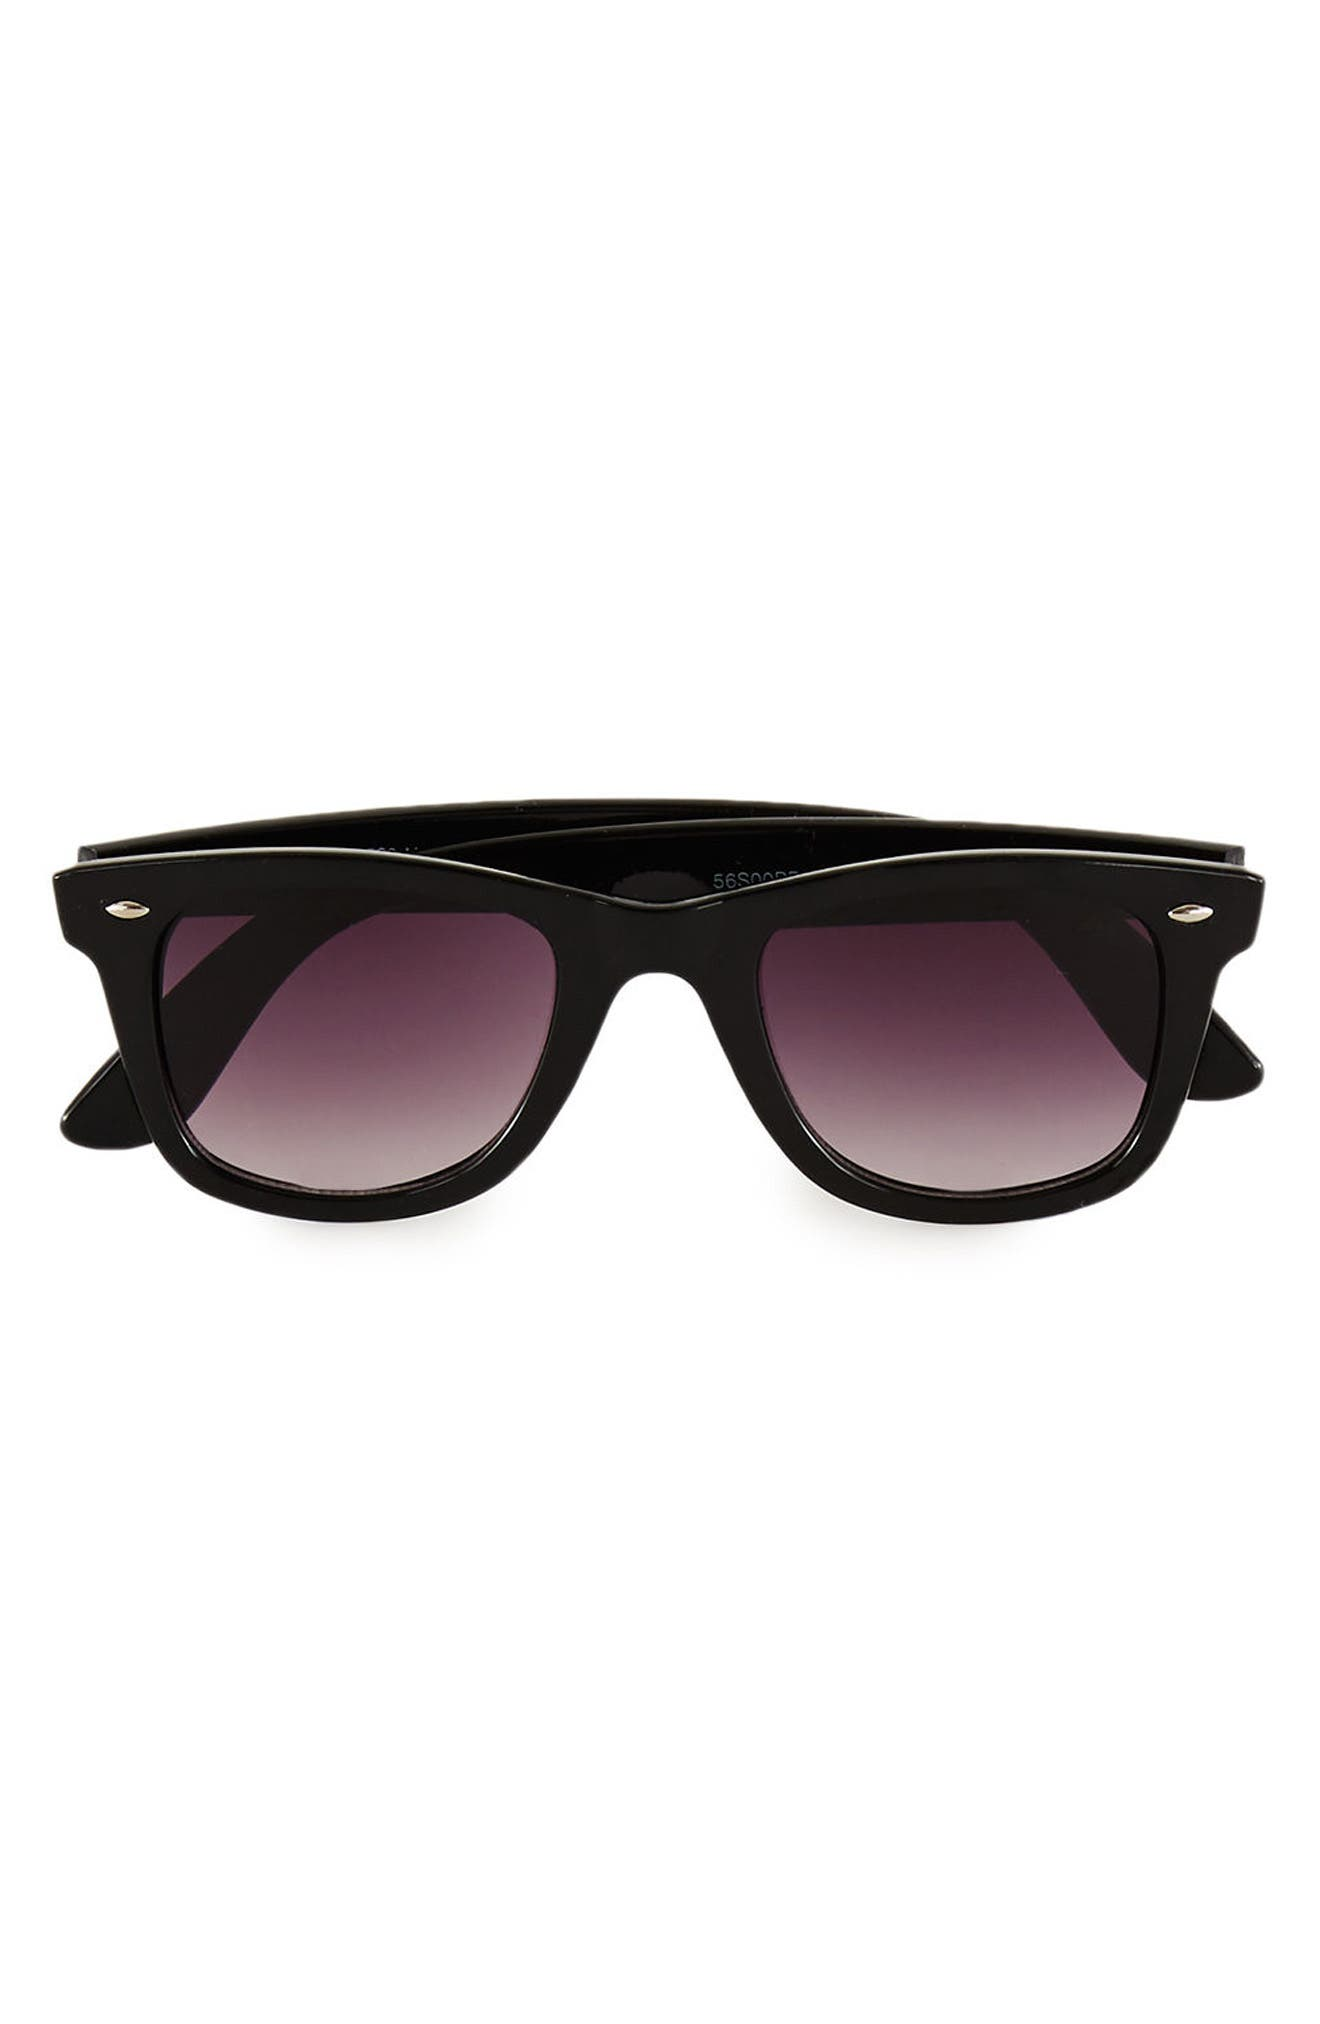 Topman 48mm Round Sunglasses